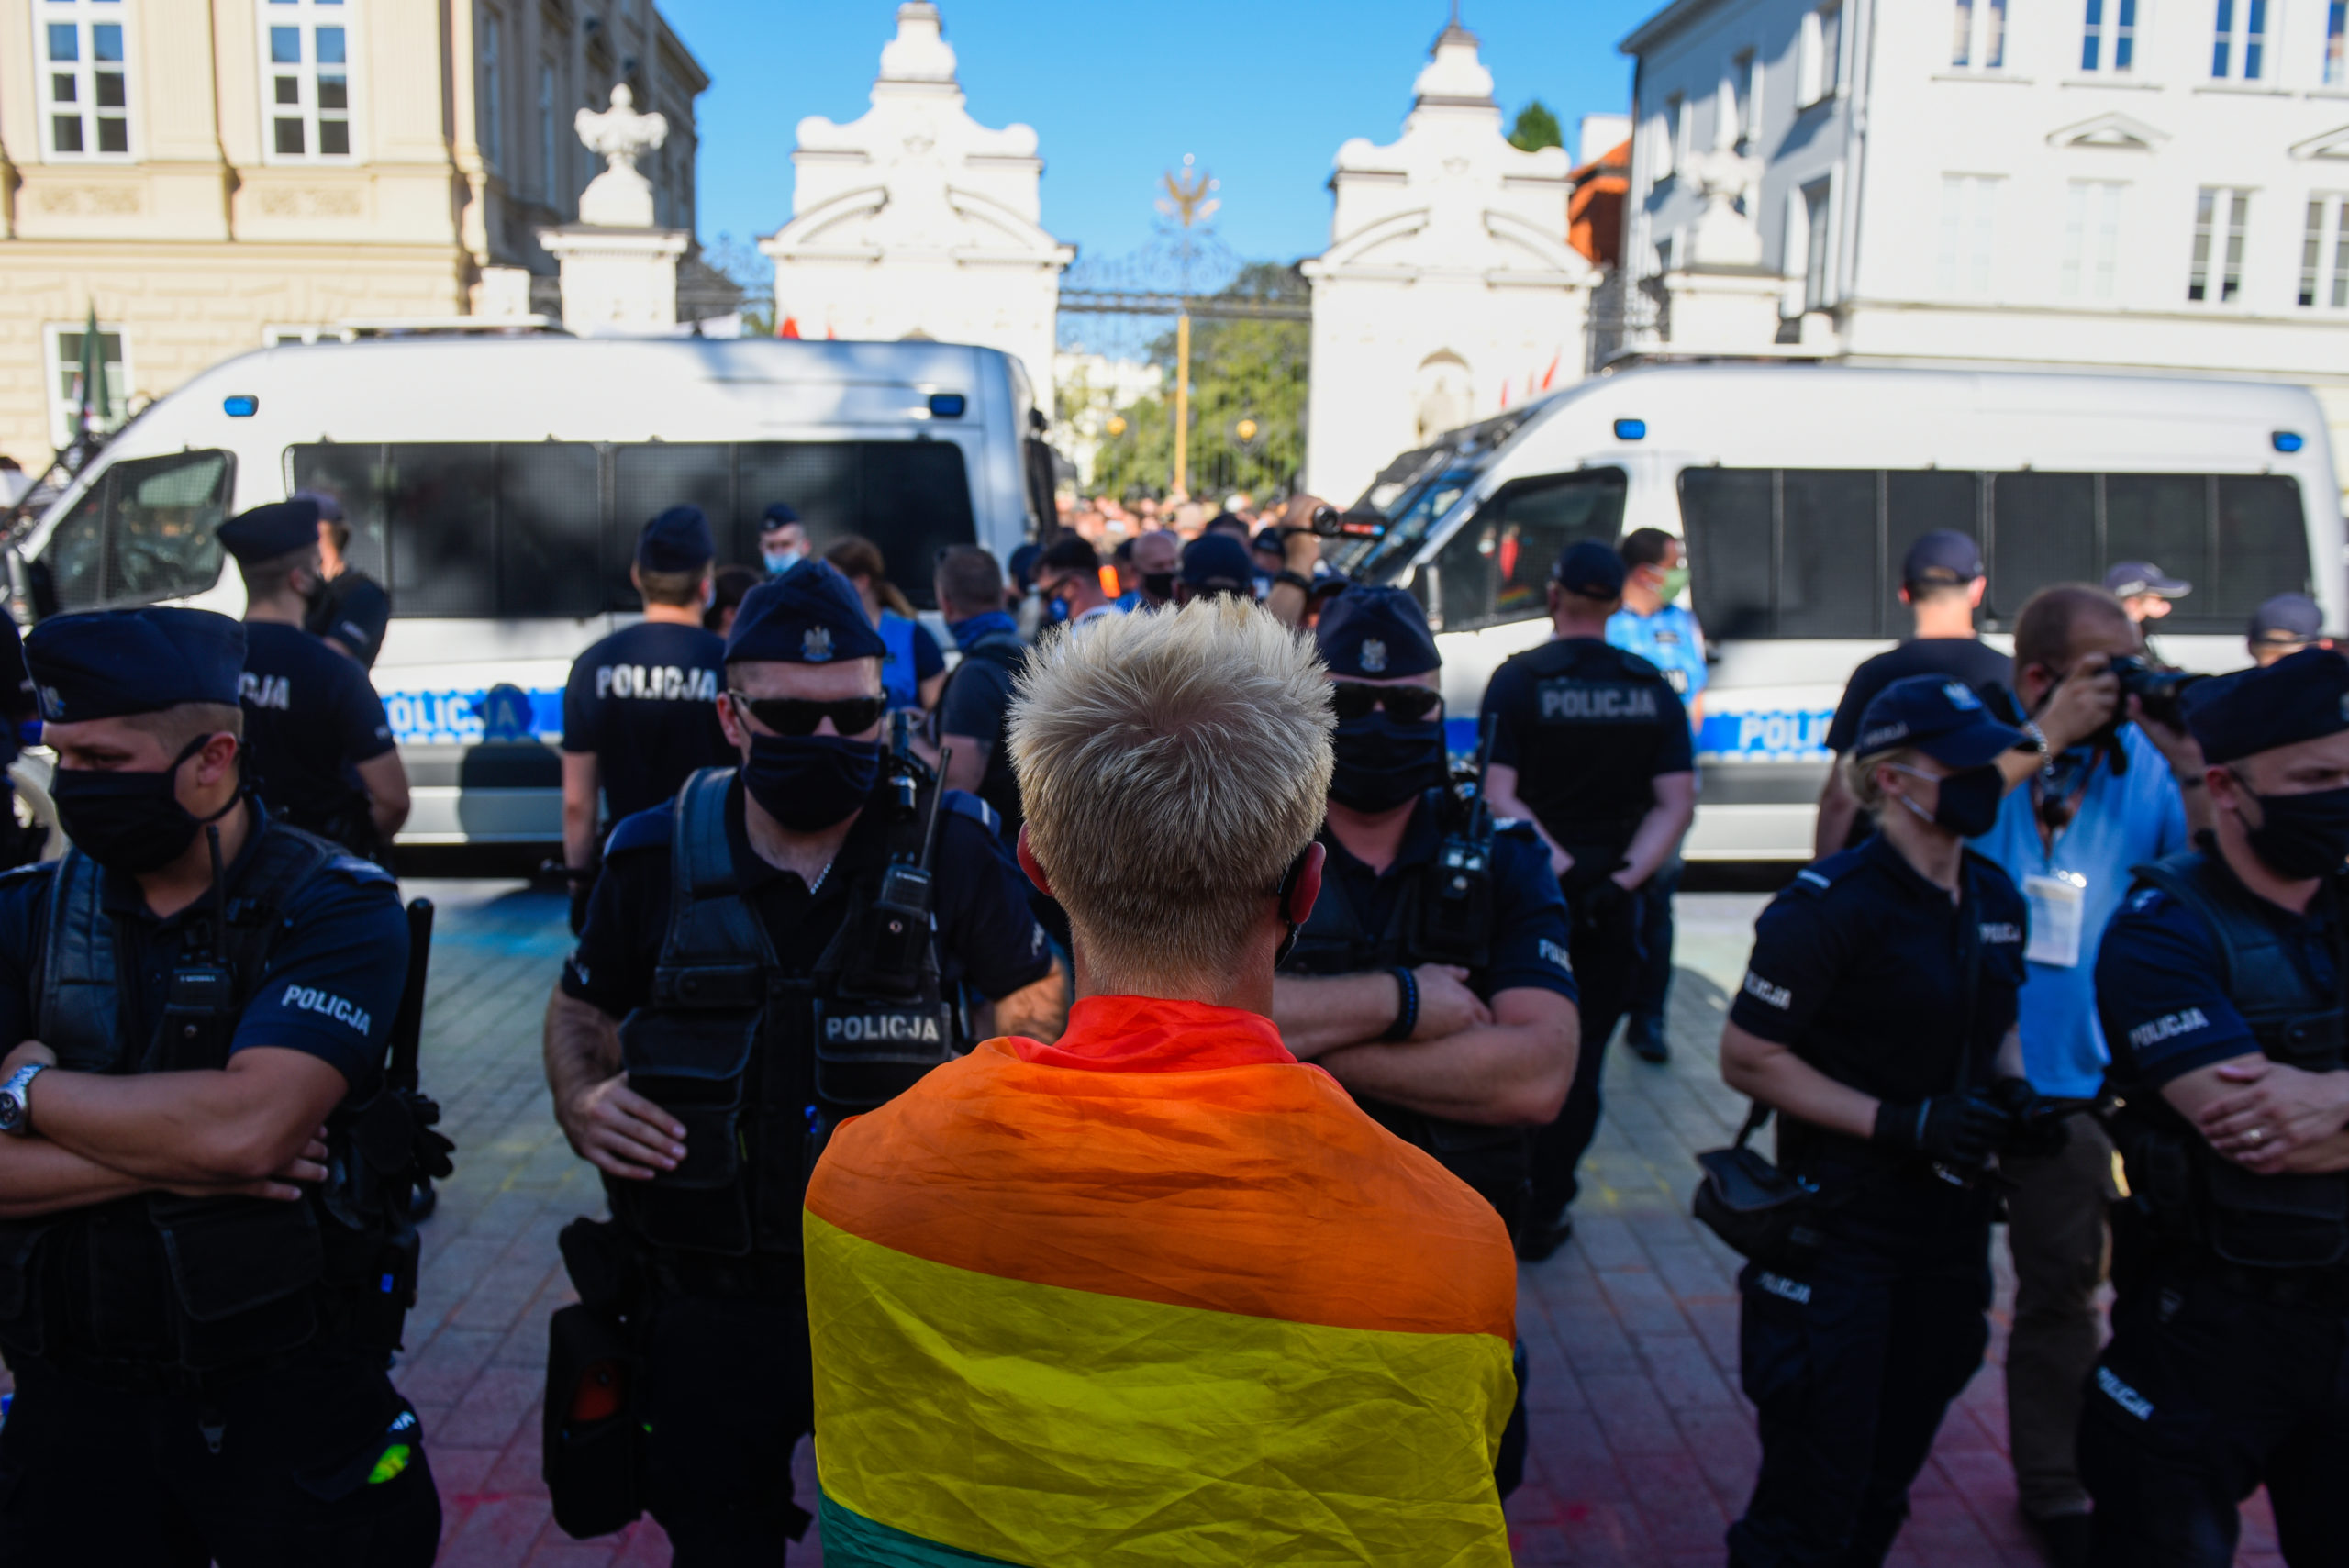 An LGBT activist wears a rainbow flag during a counter protest against an anti-LGBT far right rally on August 16, 2020 in Warsaw, Poland.